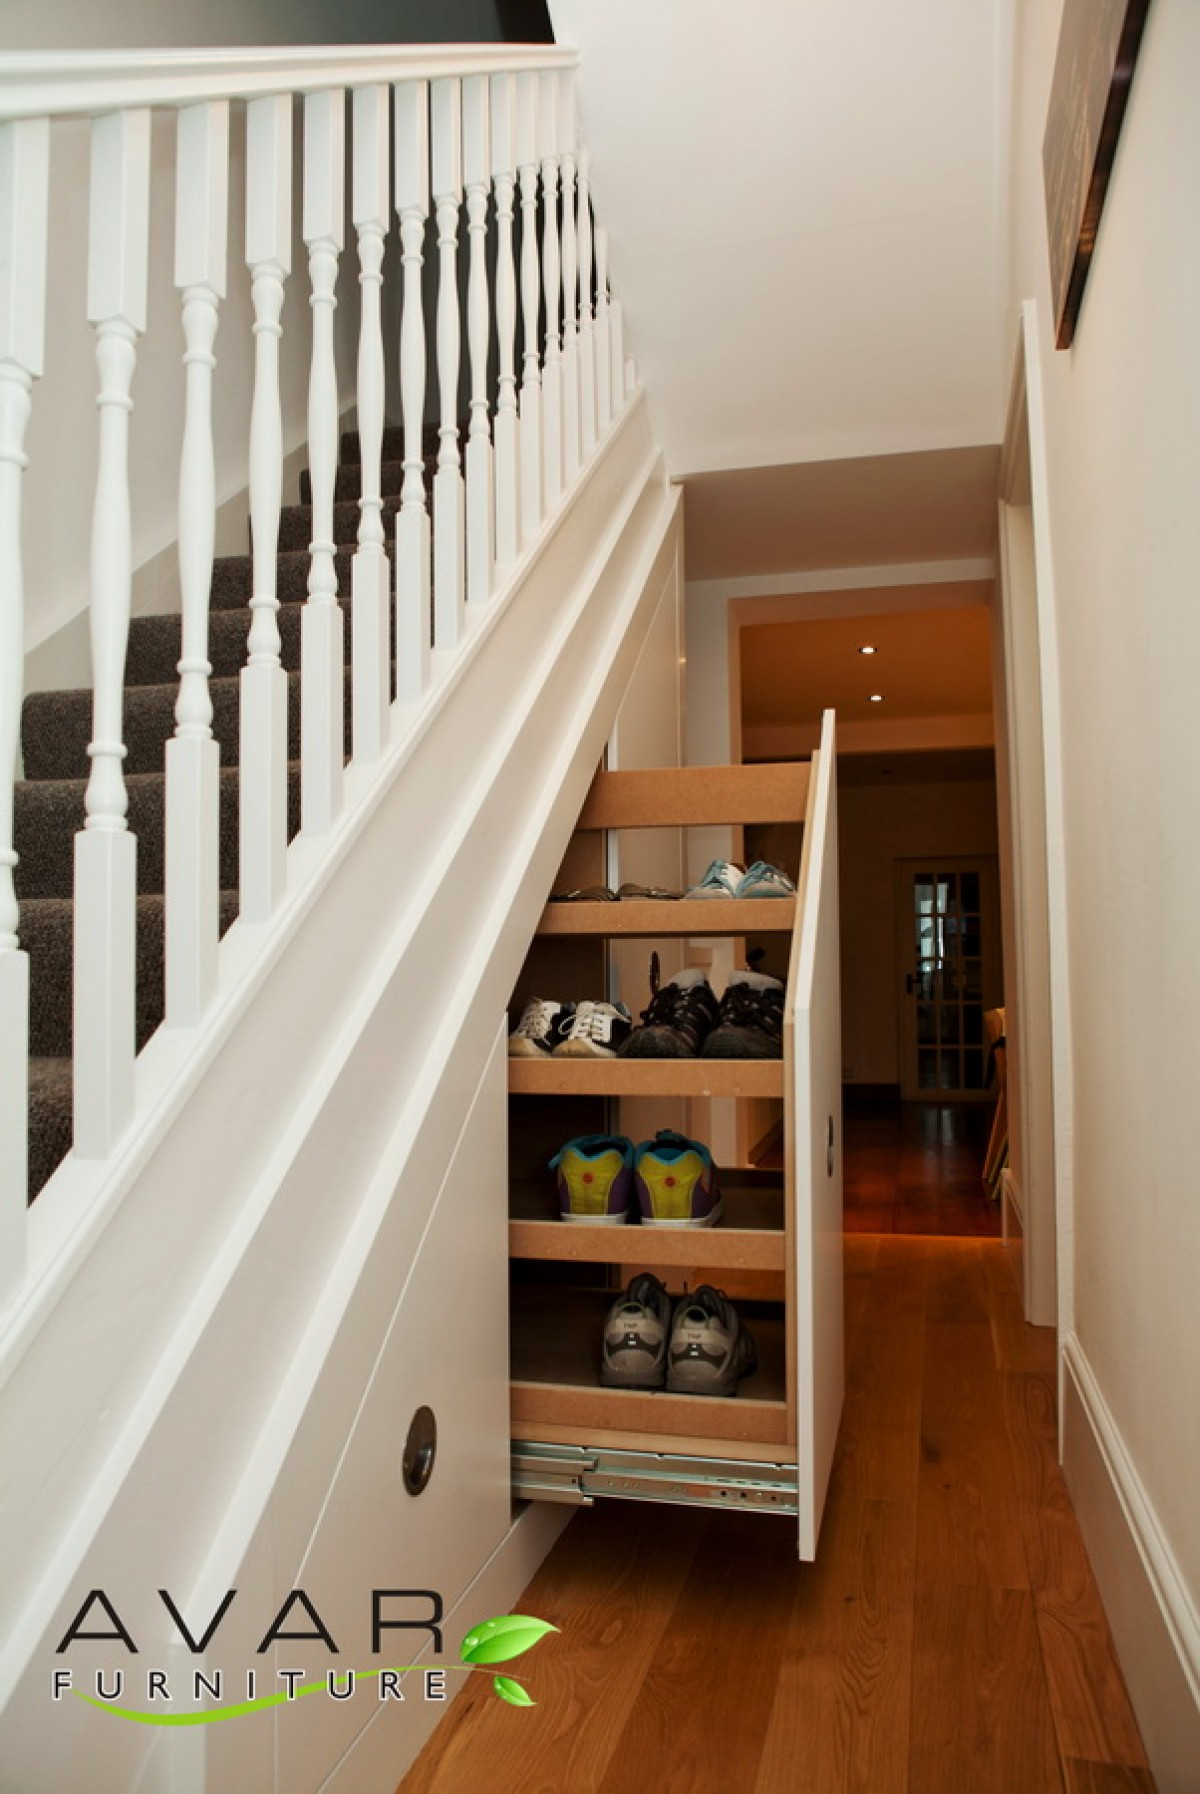 under the stairs storage ideas native home garden design